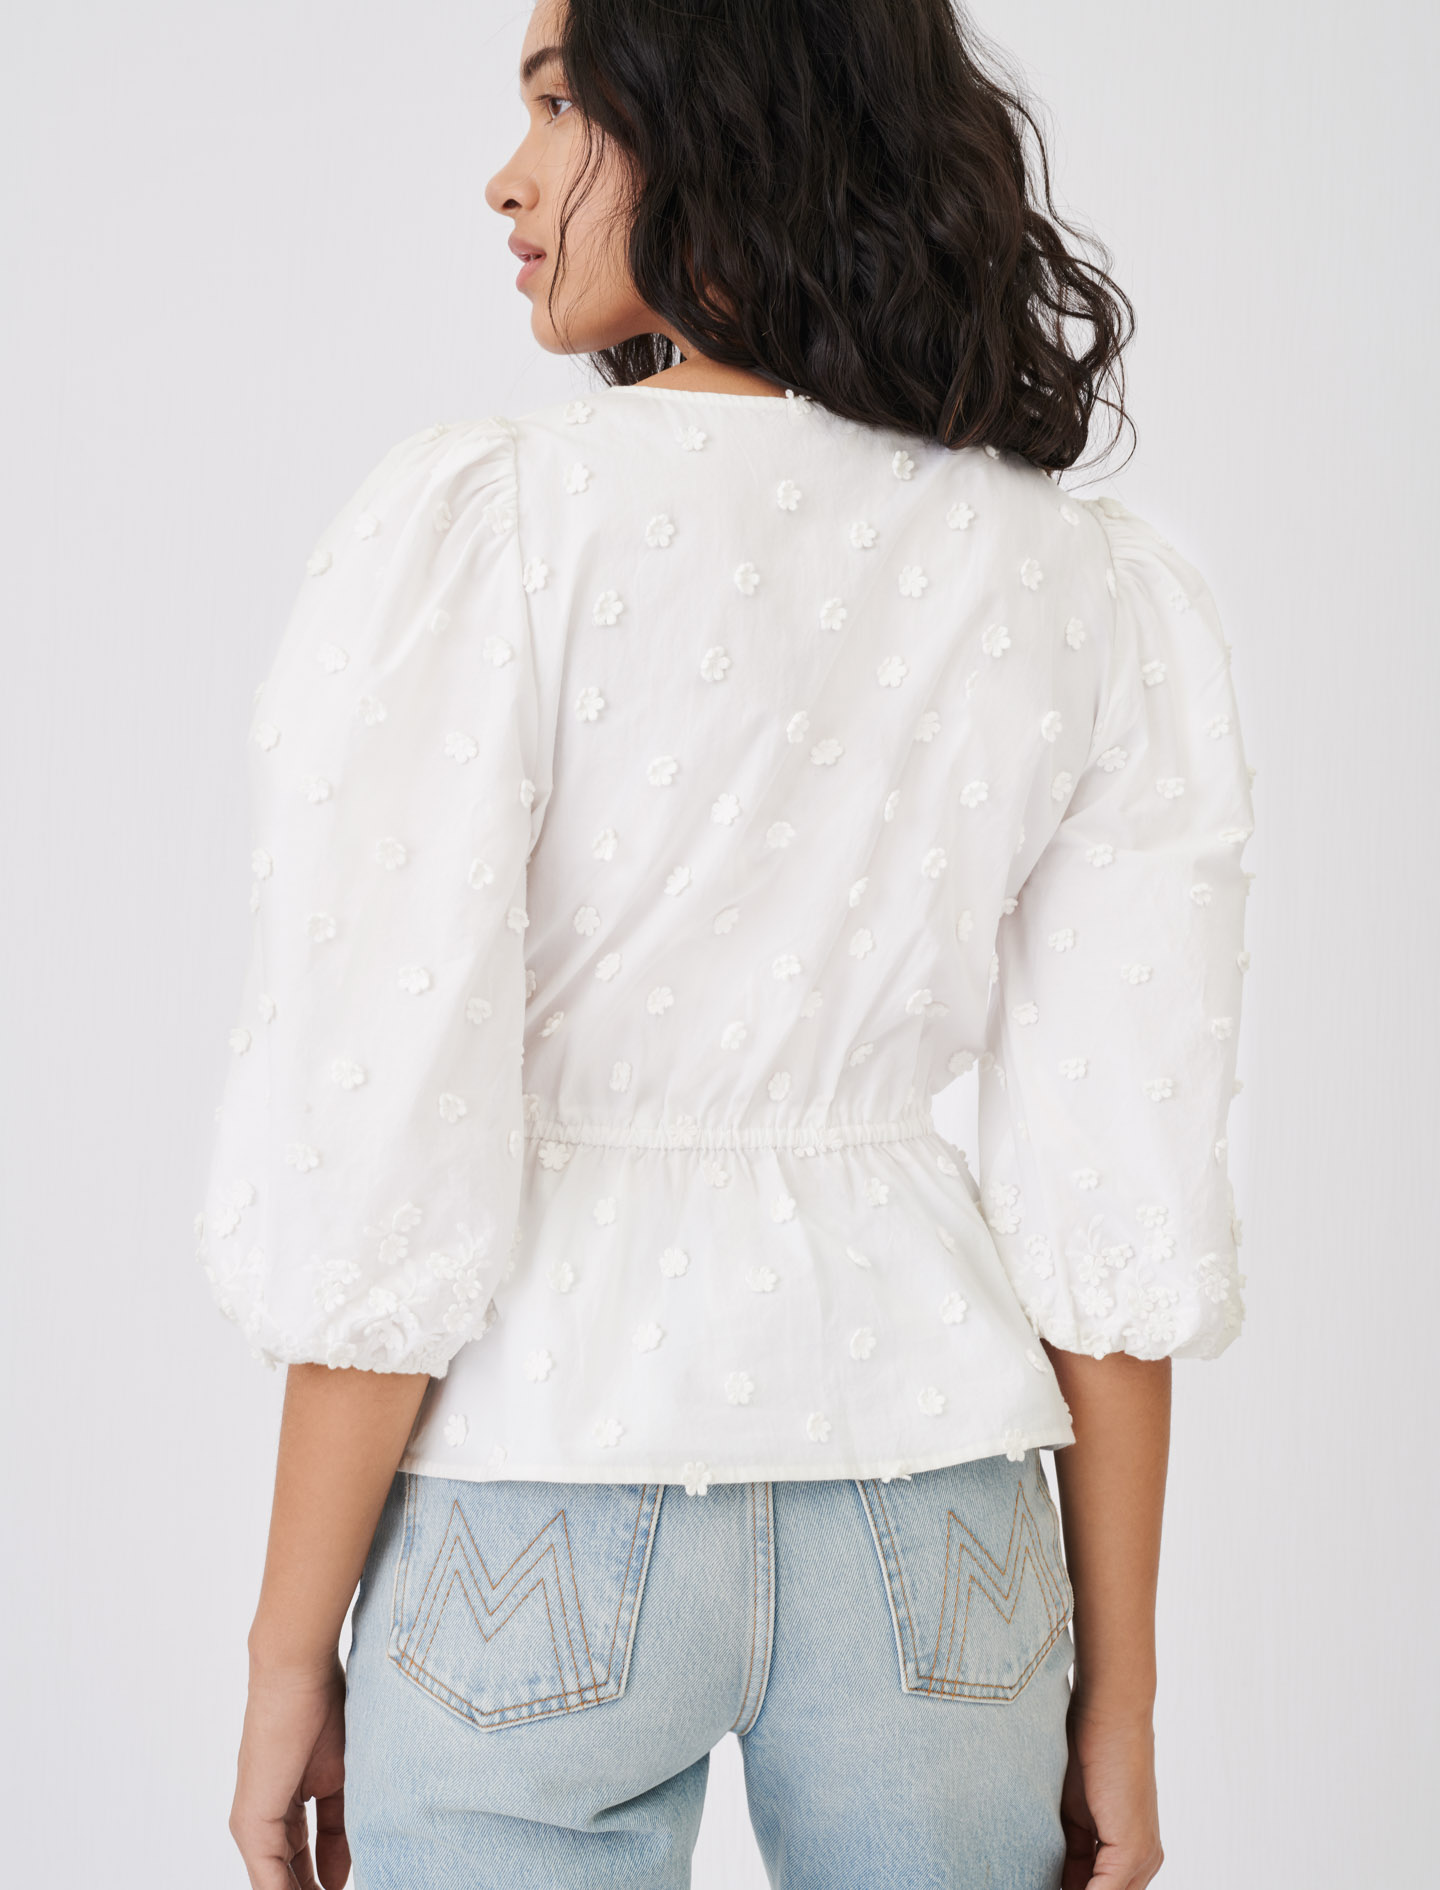 Embroidered top, gathered at the waist